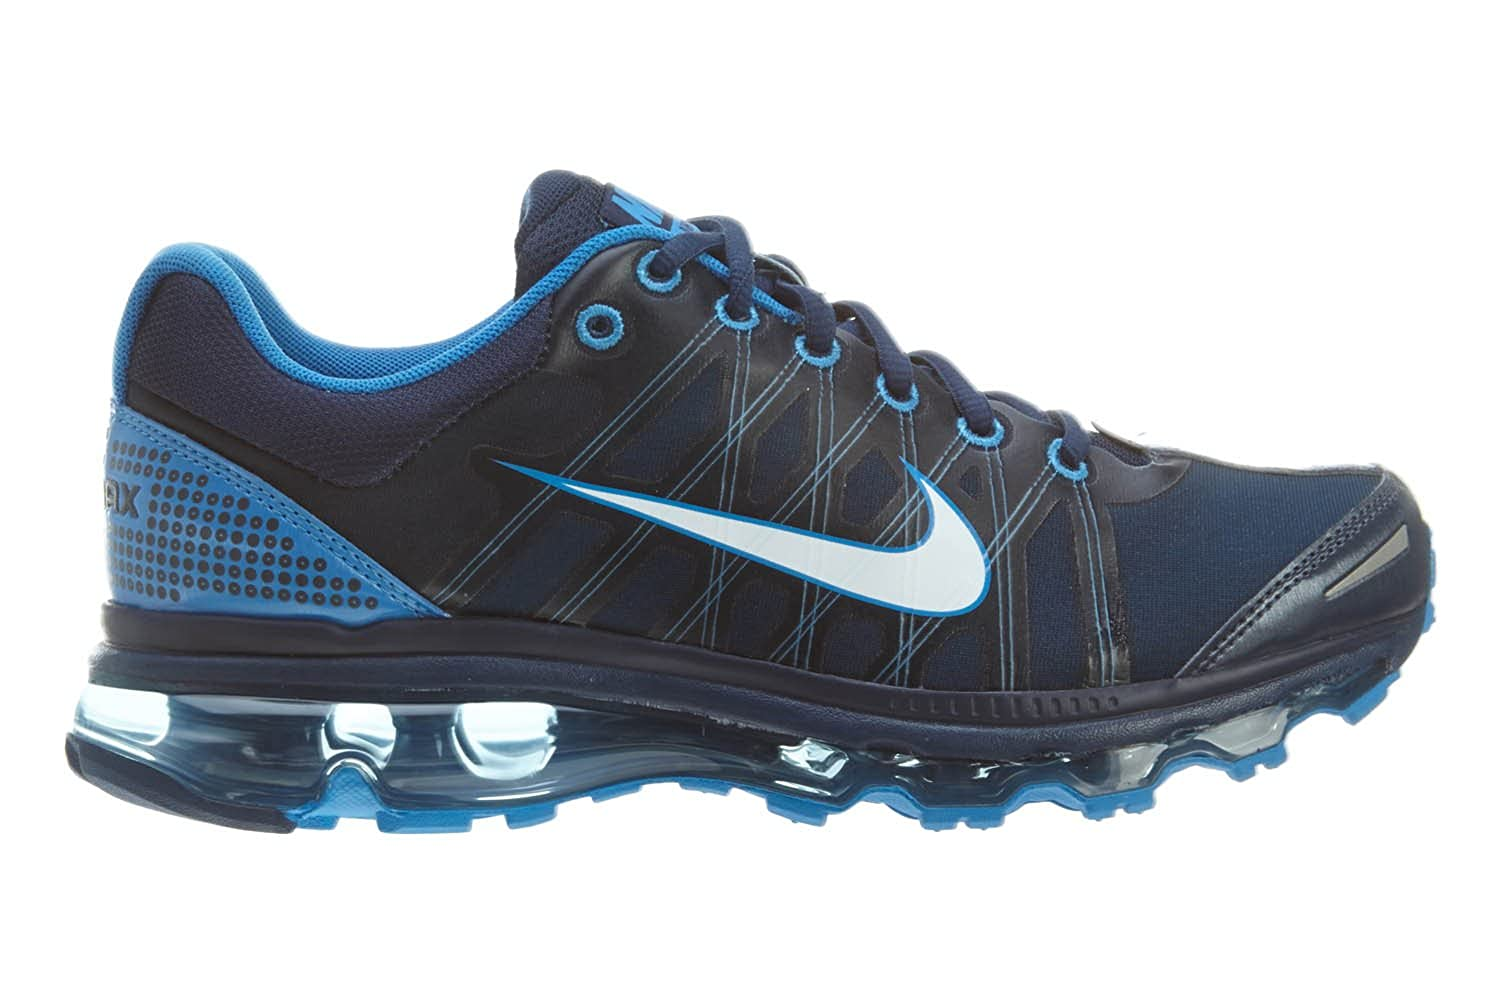 Coordinate Aquarium presume  Buy Nike Air Max 2009 Mens Running Shoes 486978-401 Midnight  Navy/White-Soar 10.5 D(M) US at Amazon.in